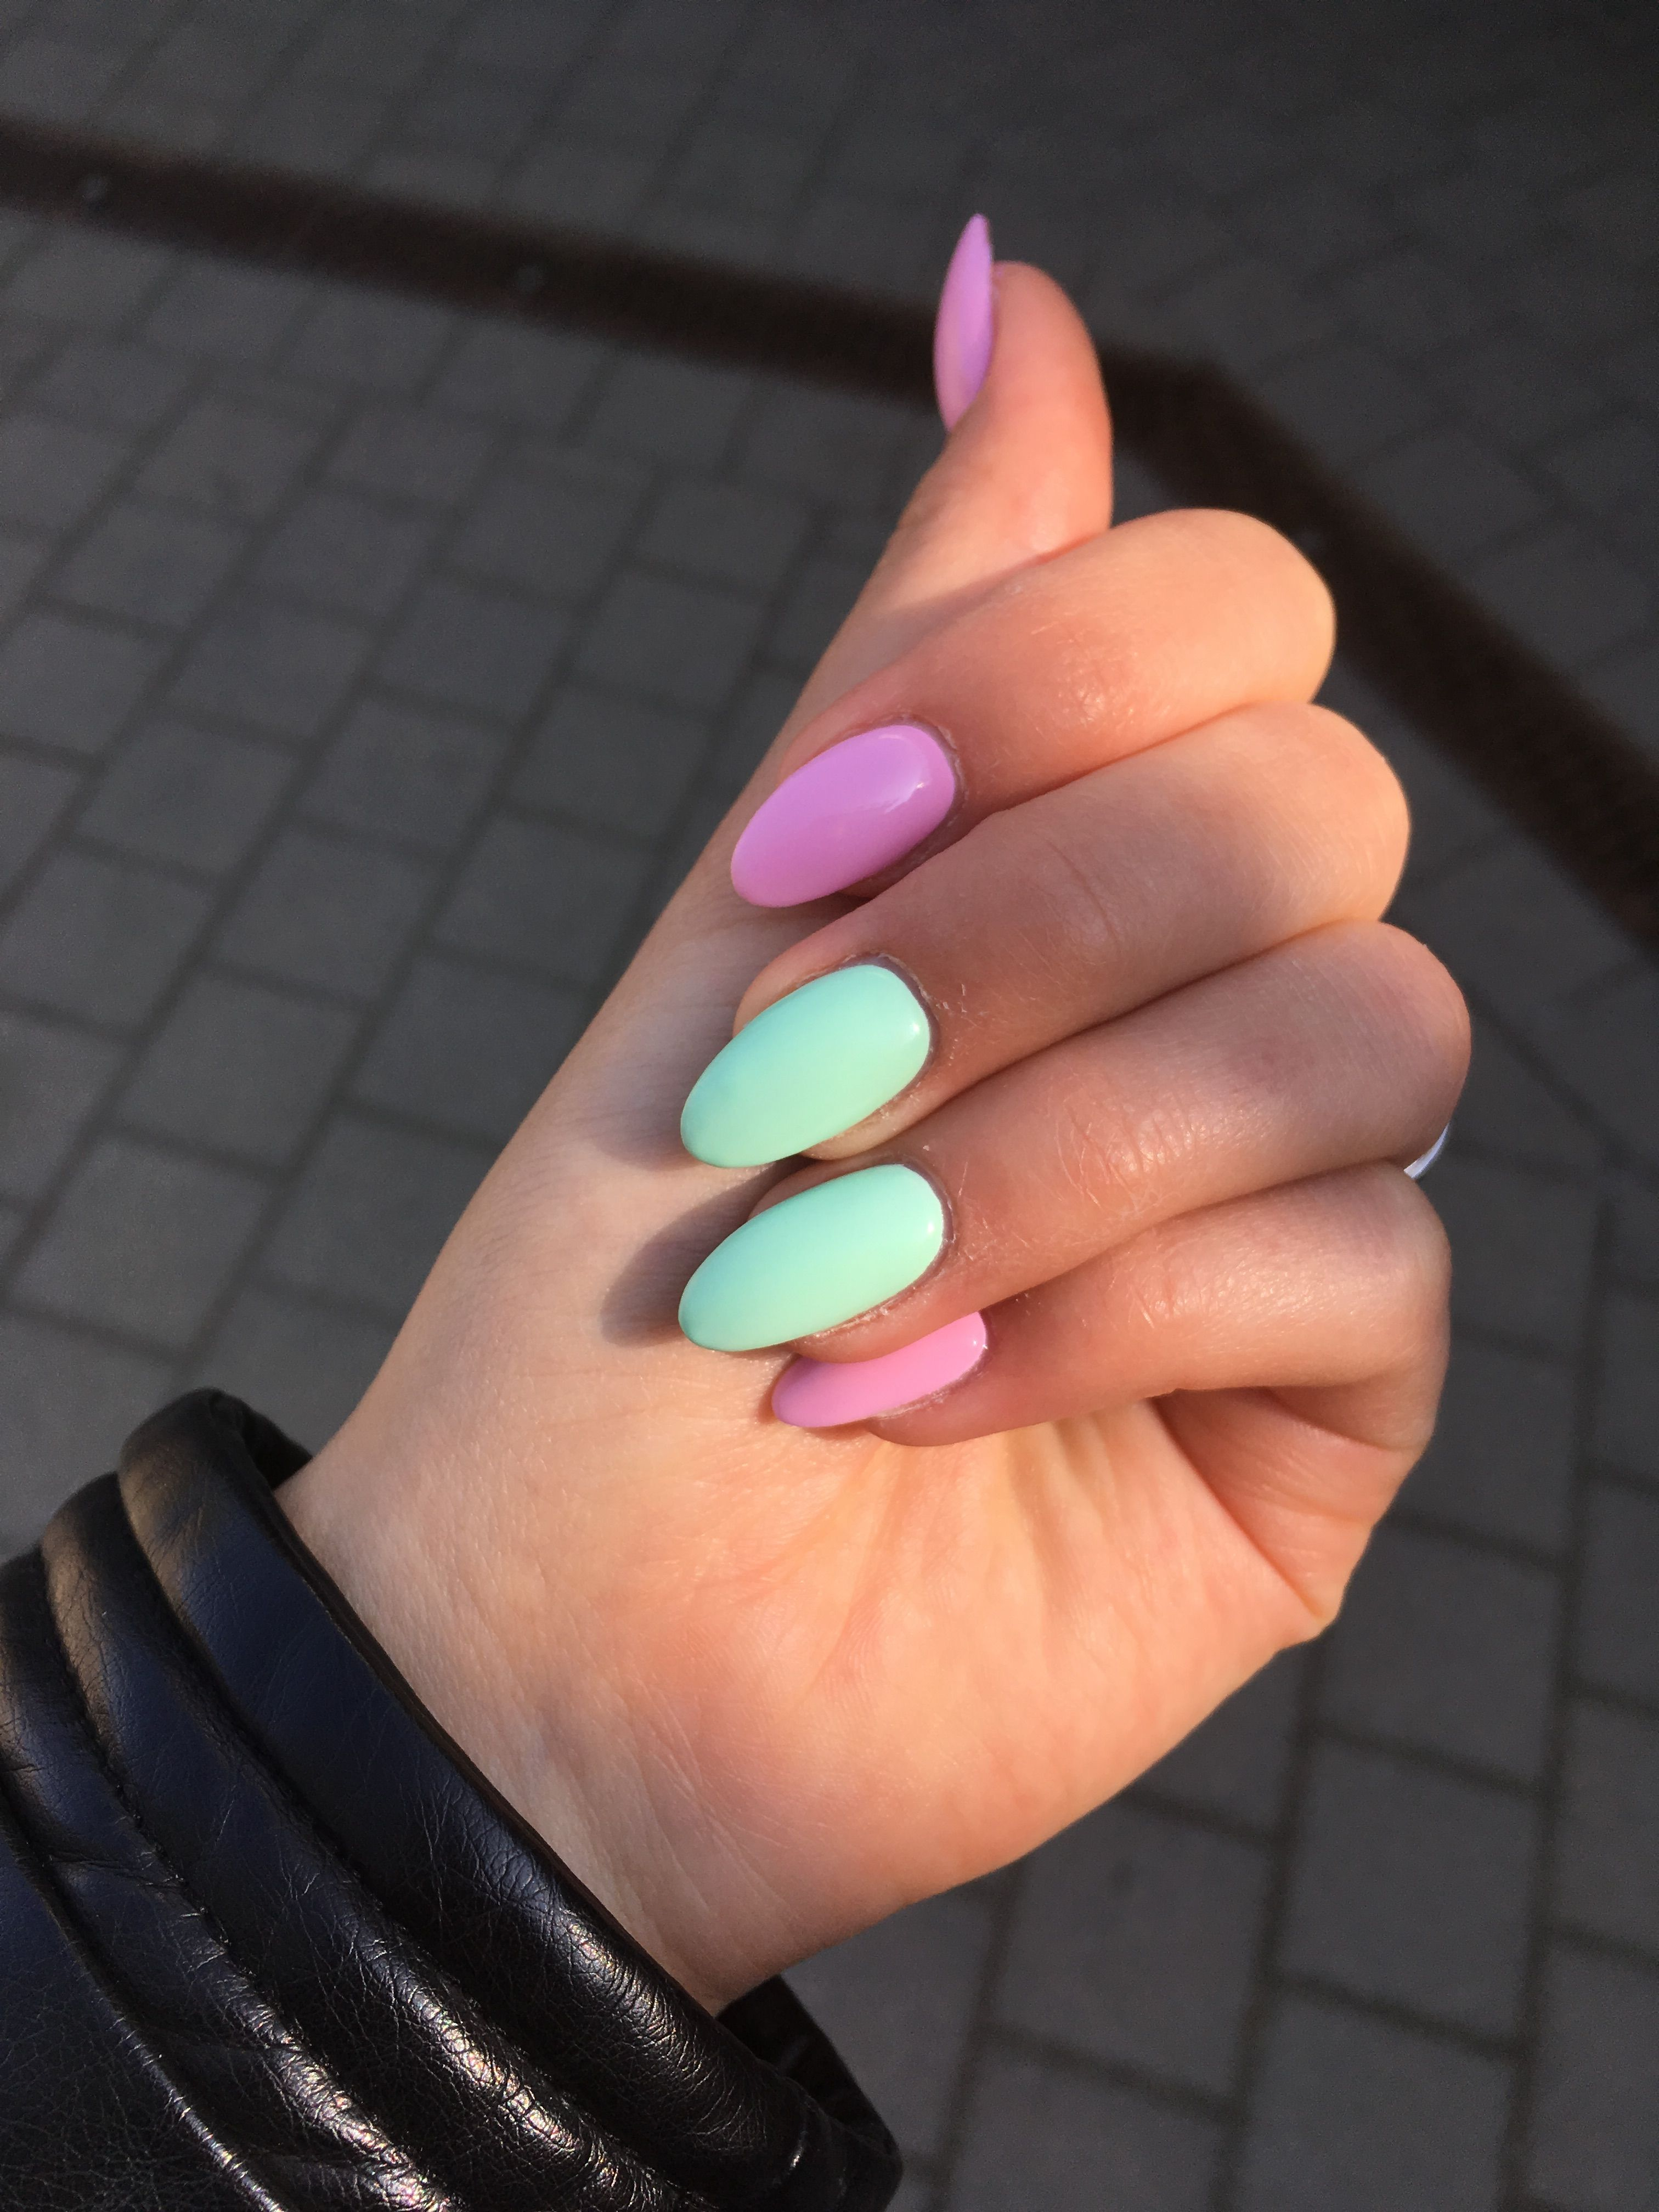 Pin by Mary Phillips on Claws Nails, Thumb, Beauty